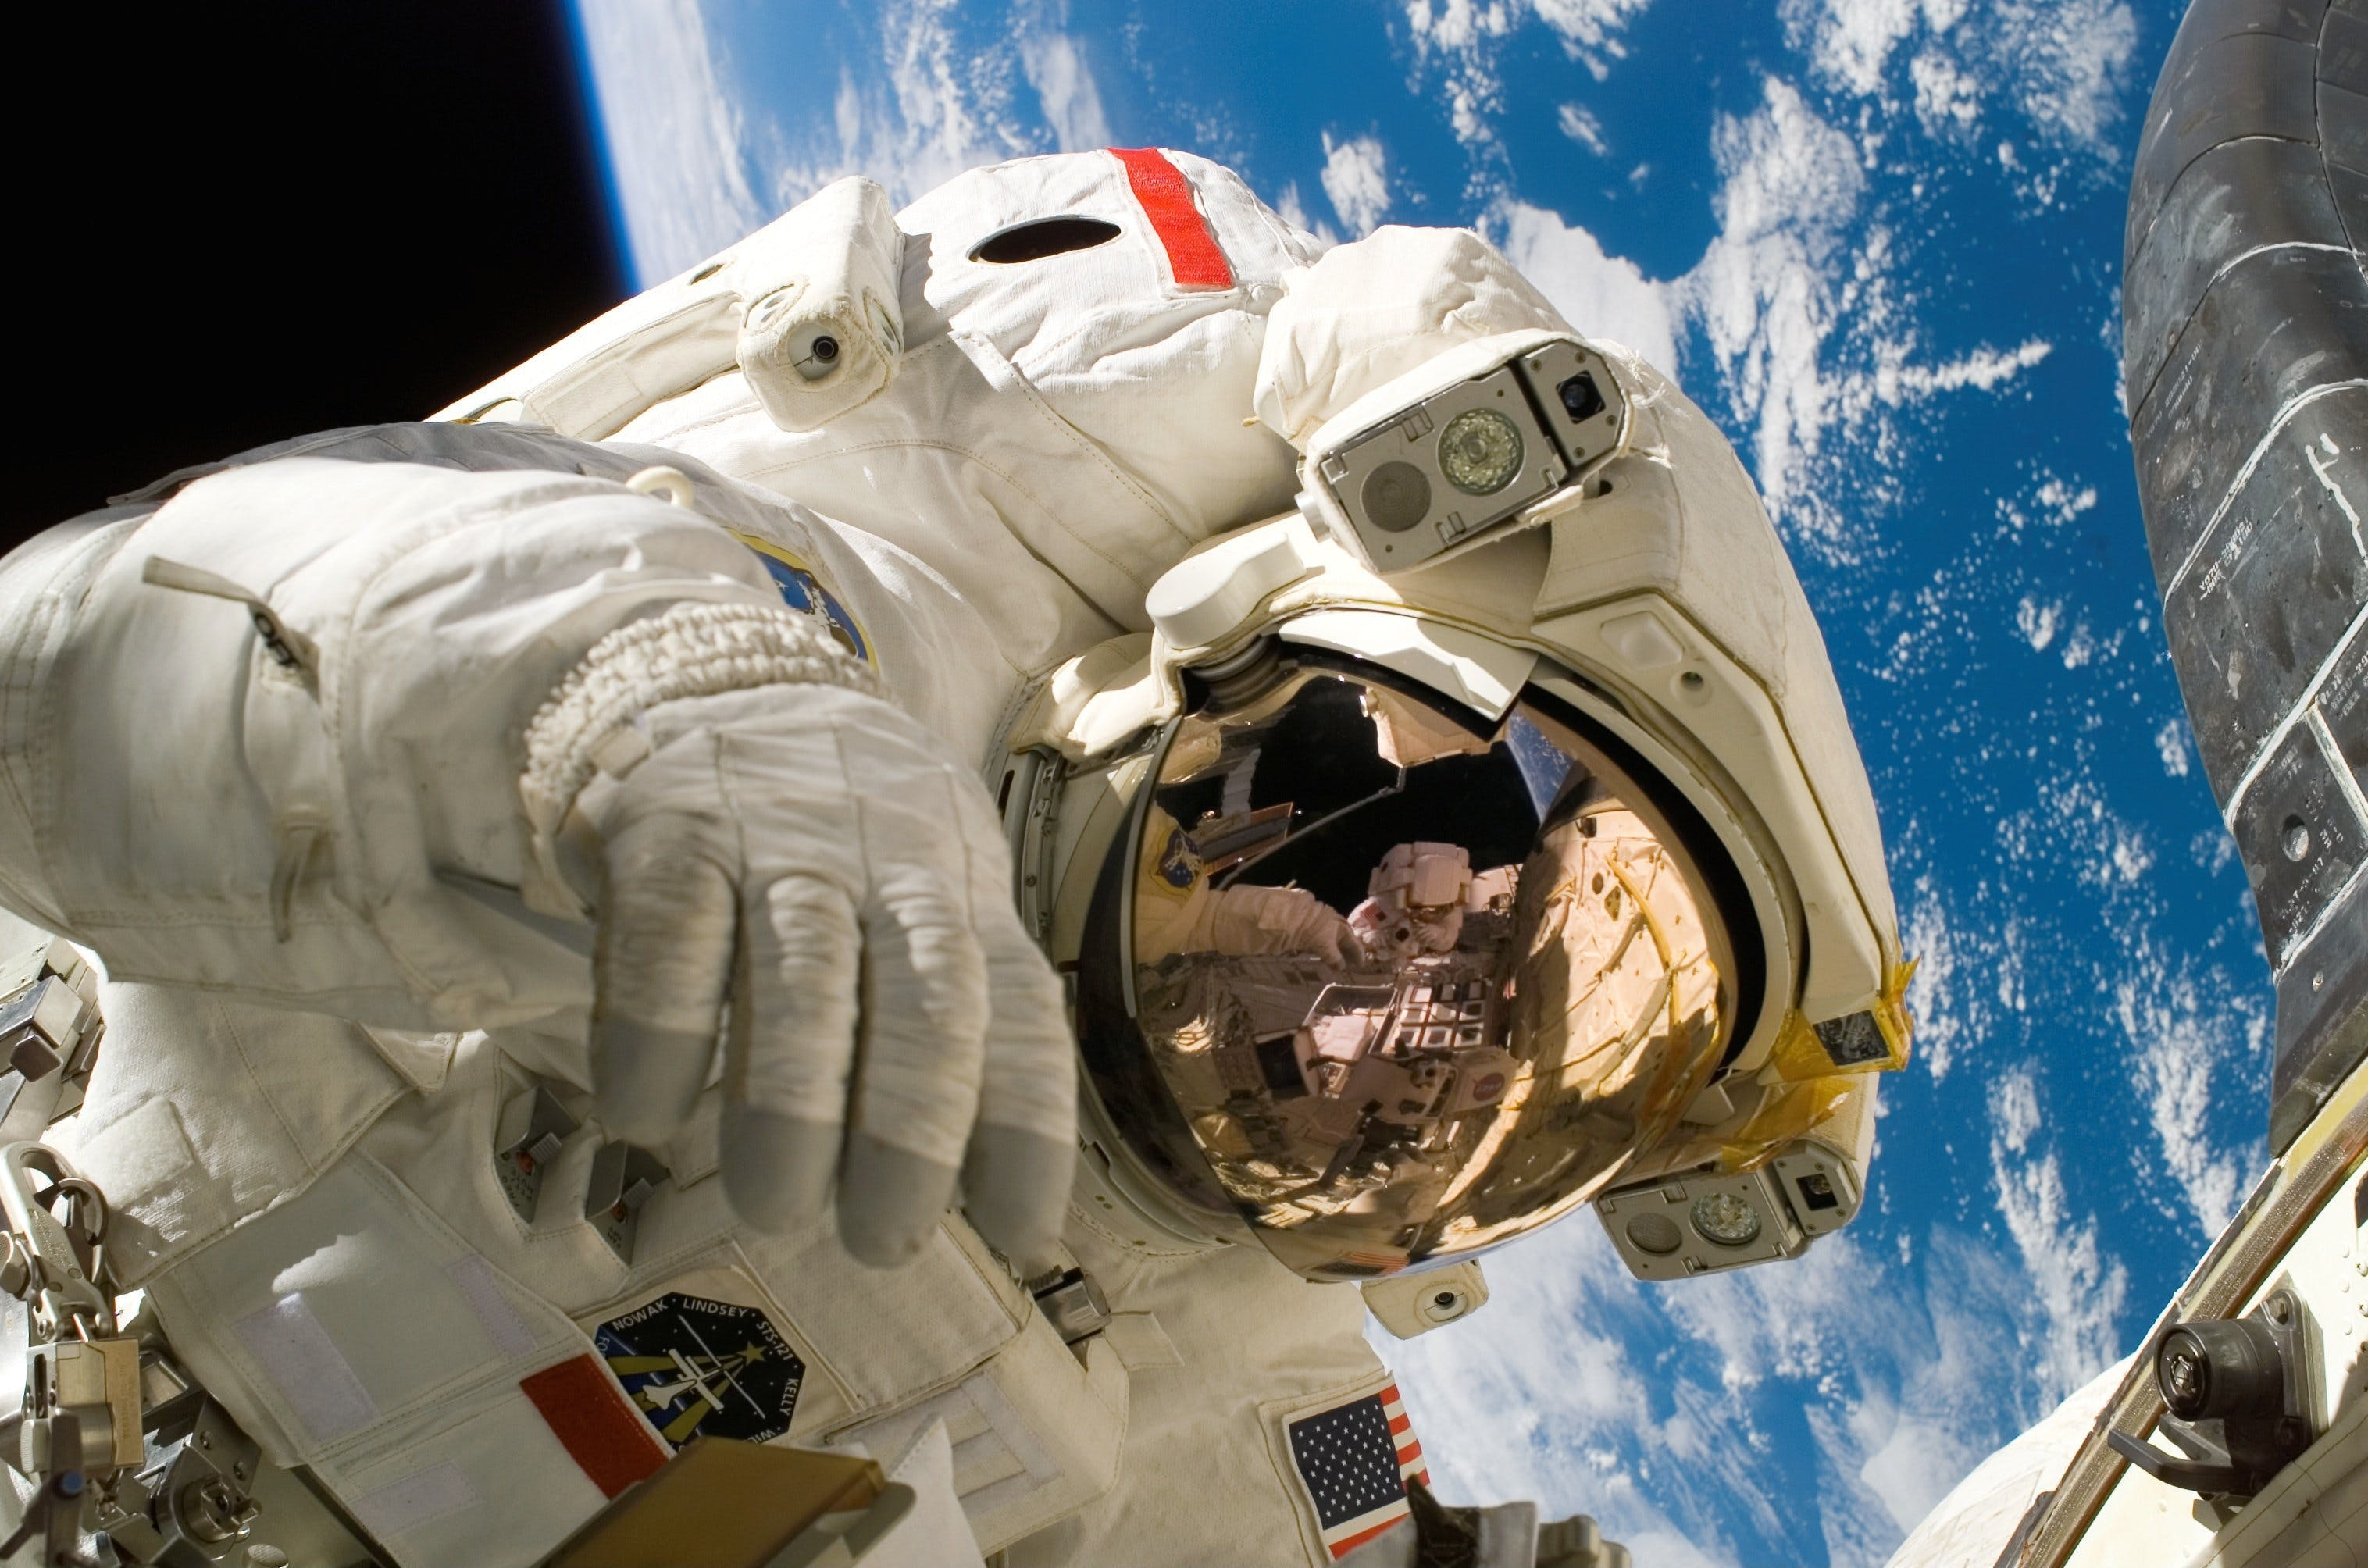 This picture shows an american astronaut in his space and extravehicular activity suite working outside of a spacecraft. In the background parts of a space shuttle are visible. In the far background of the picture planet earth with it's blue color and white clouds is shown as well as a patch of black space.